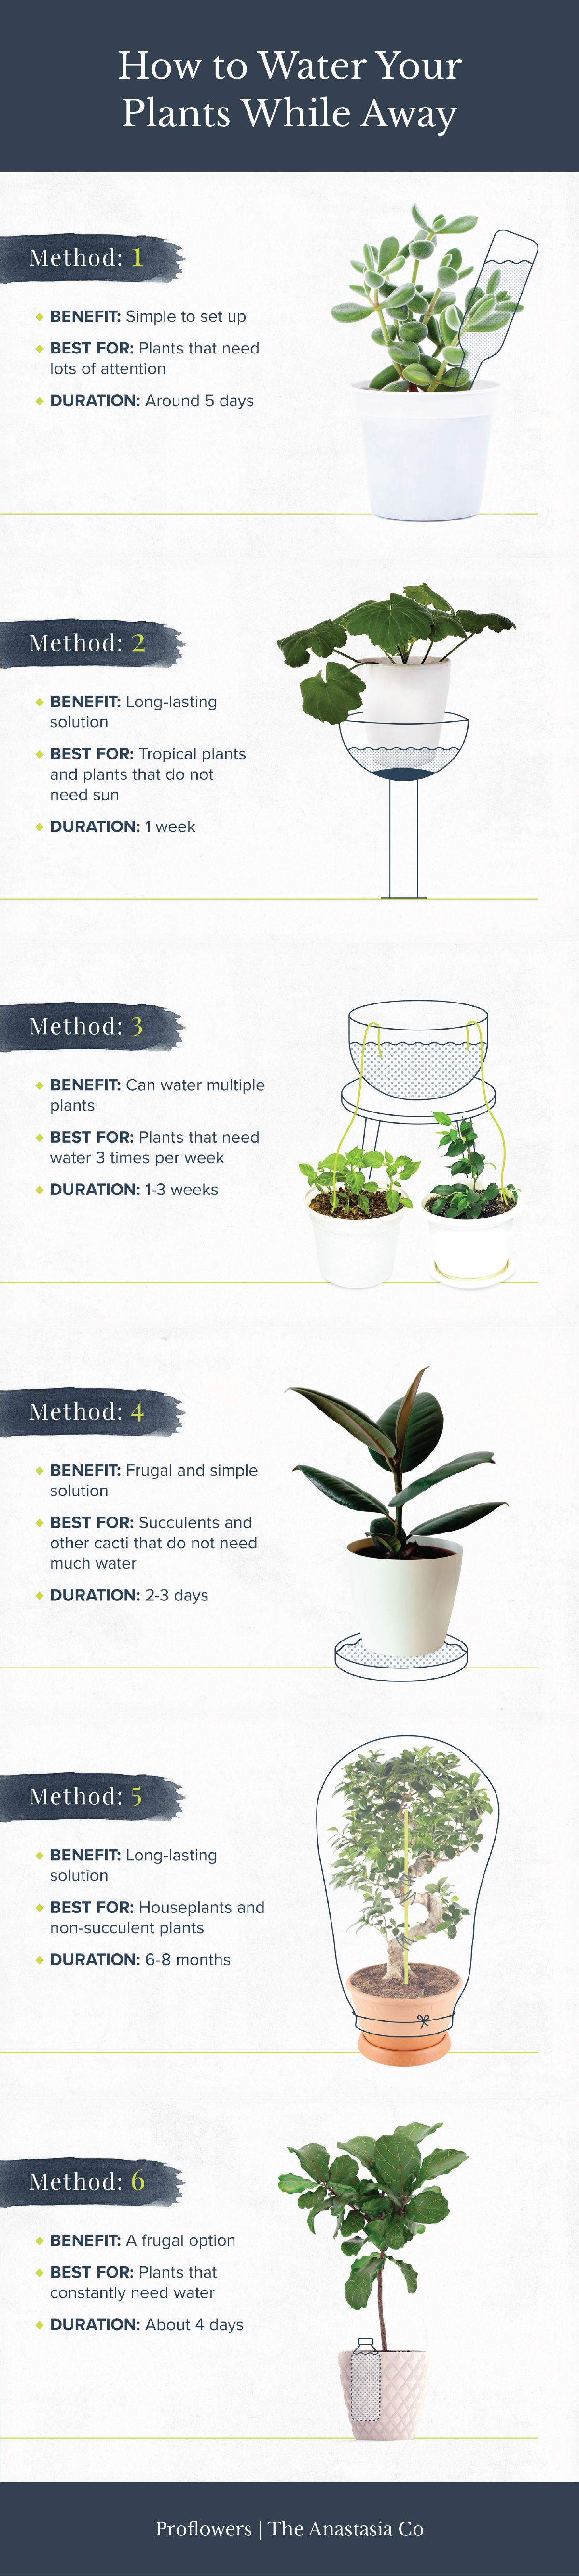 How to Water Plants While Away on Vacation   Water plants, Plants ...